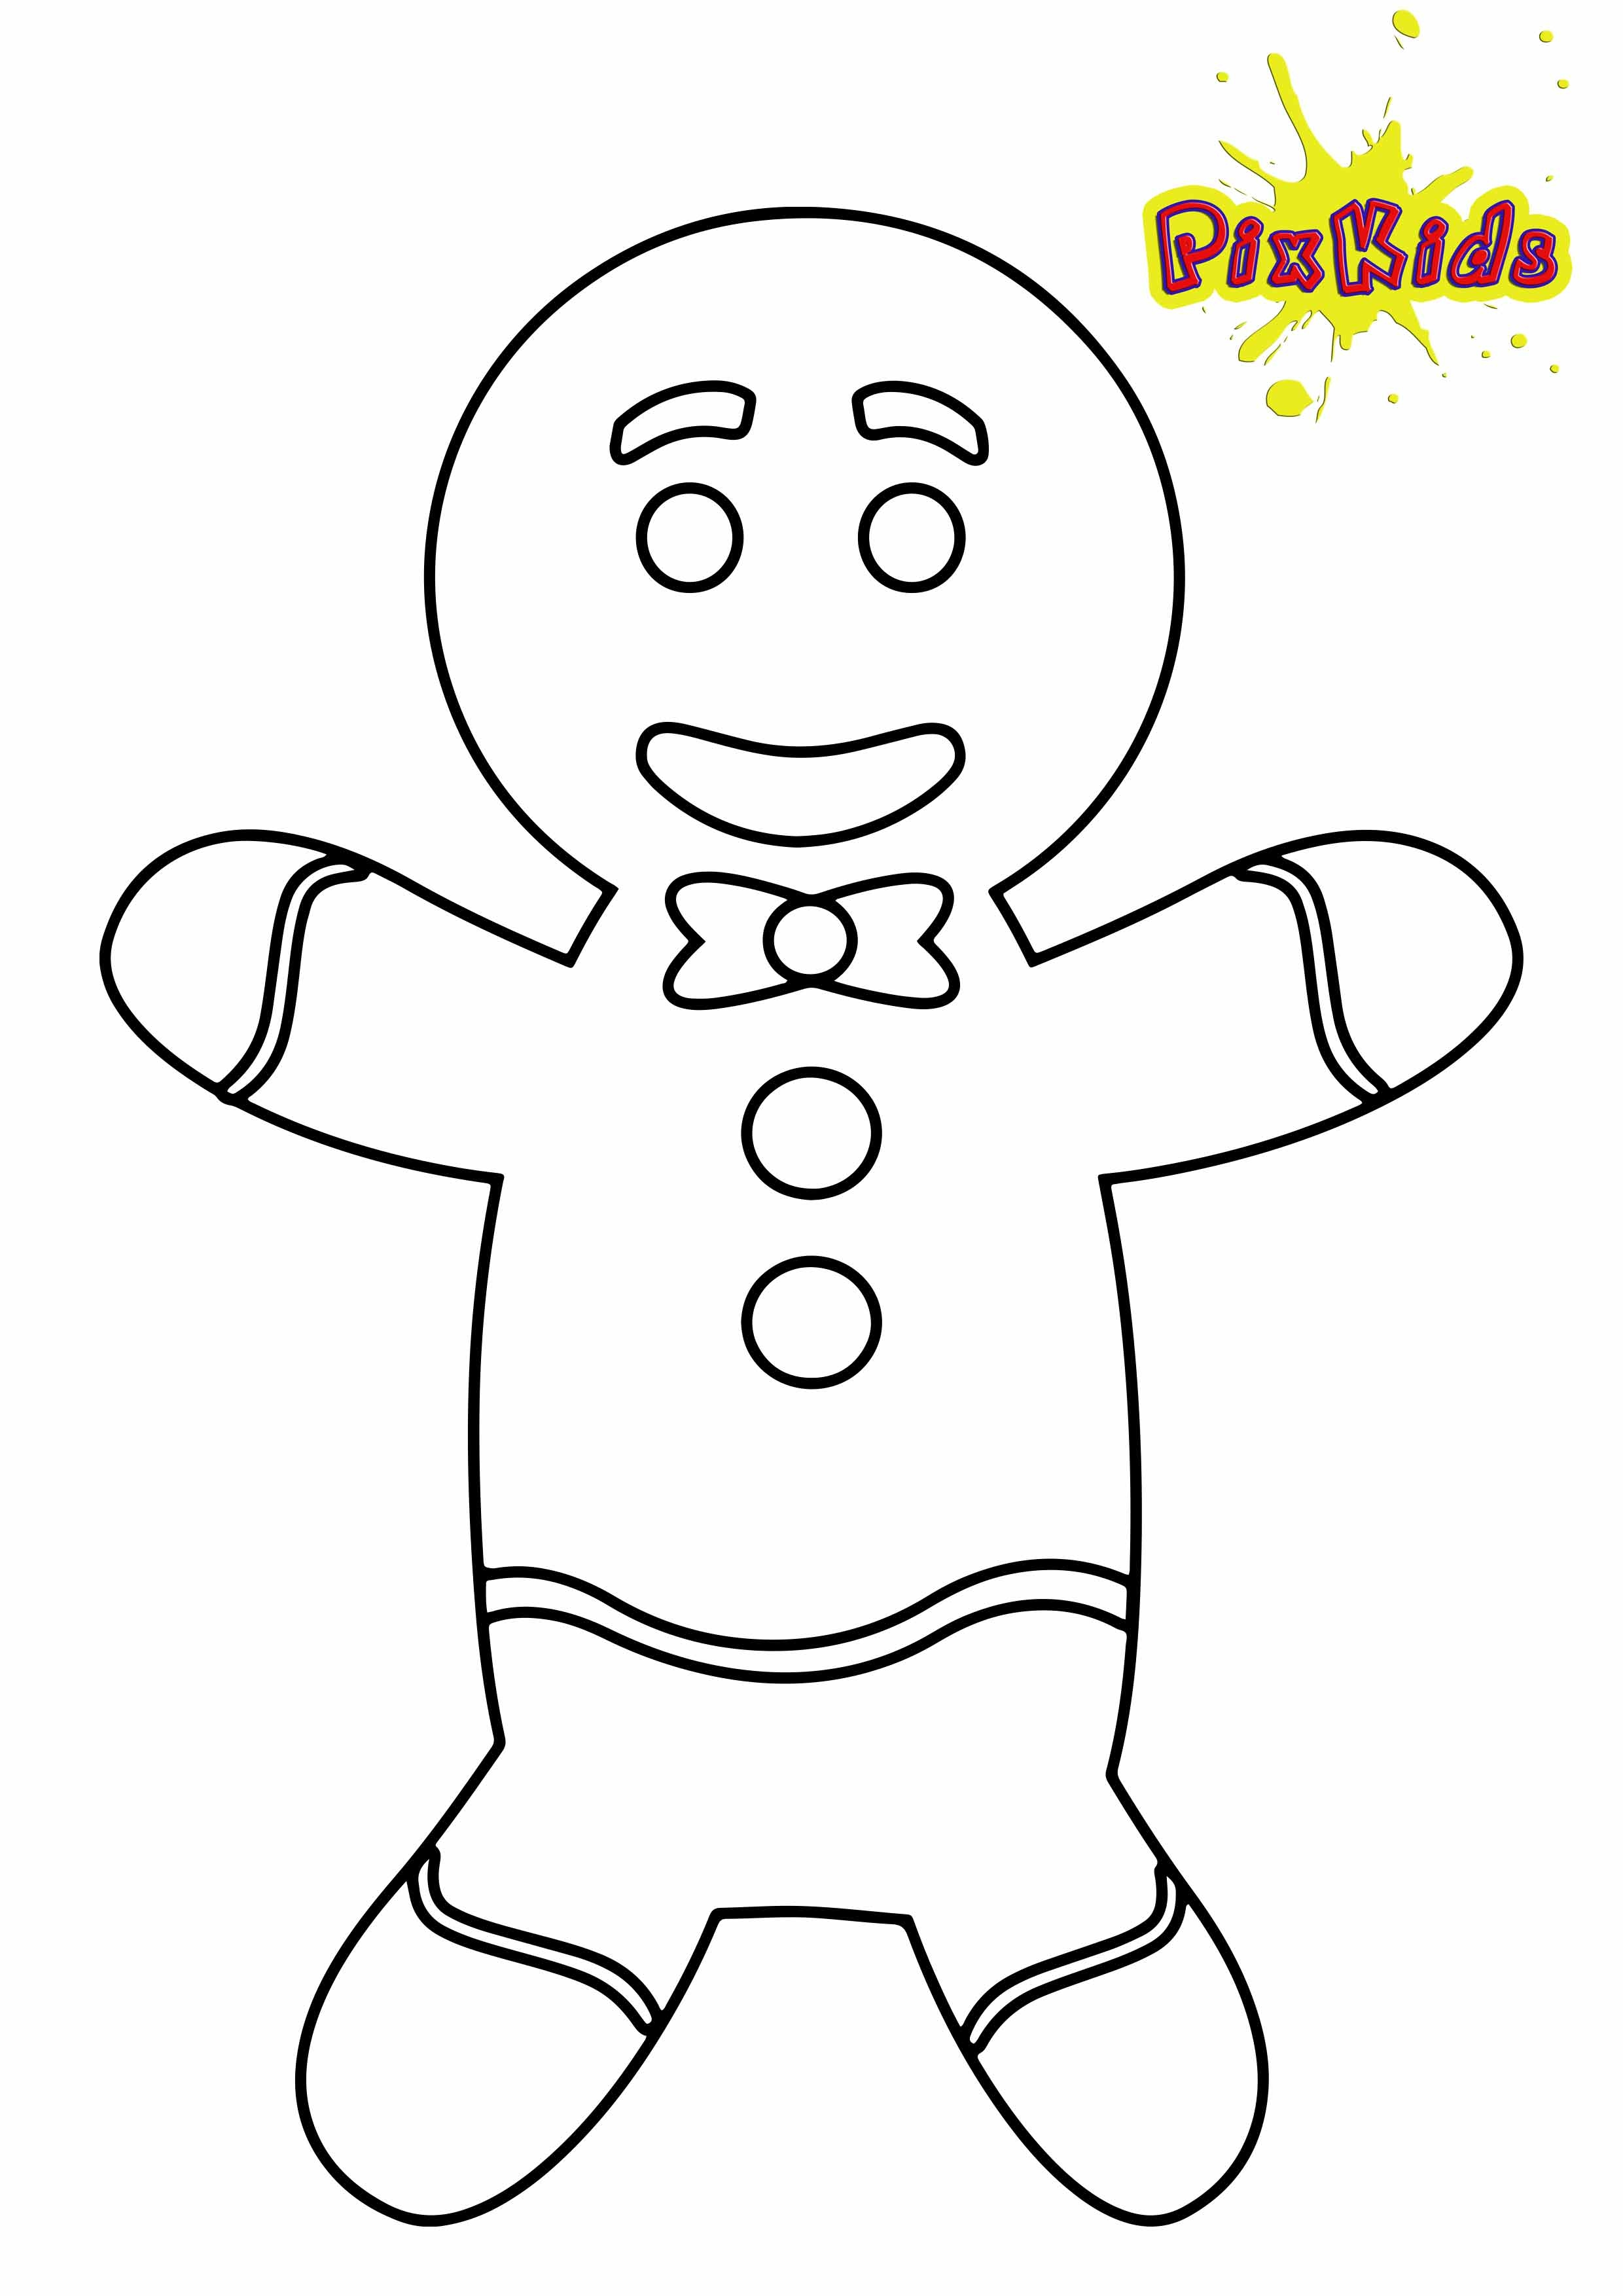 winter hat coloring page - 2